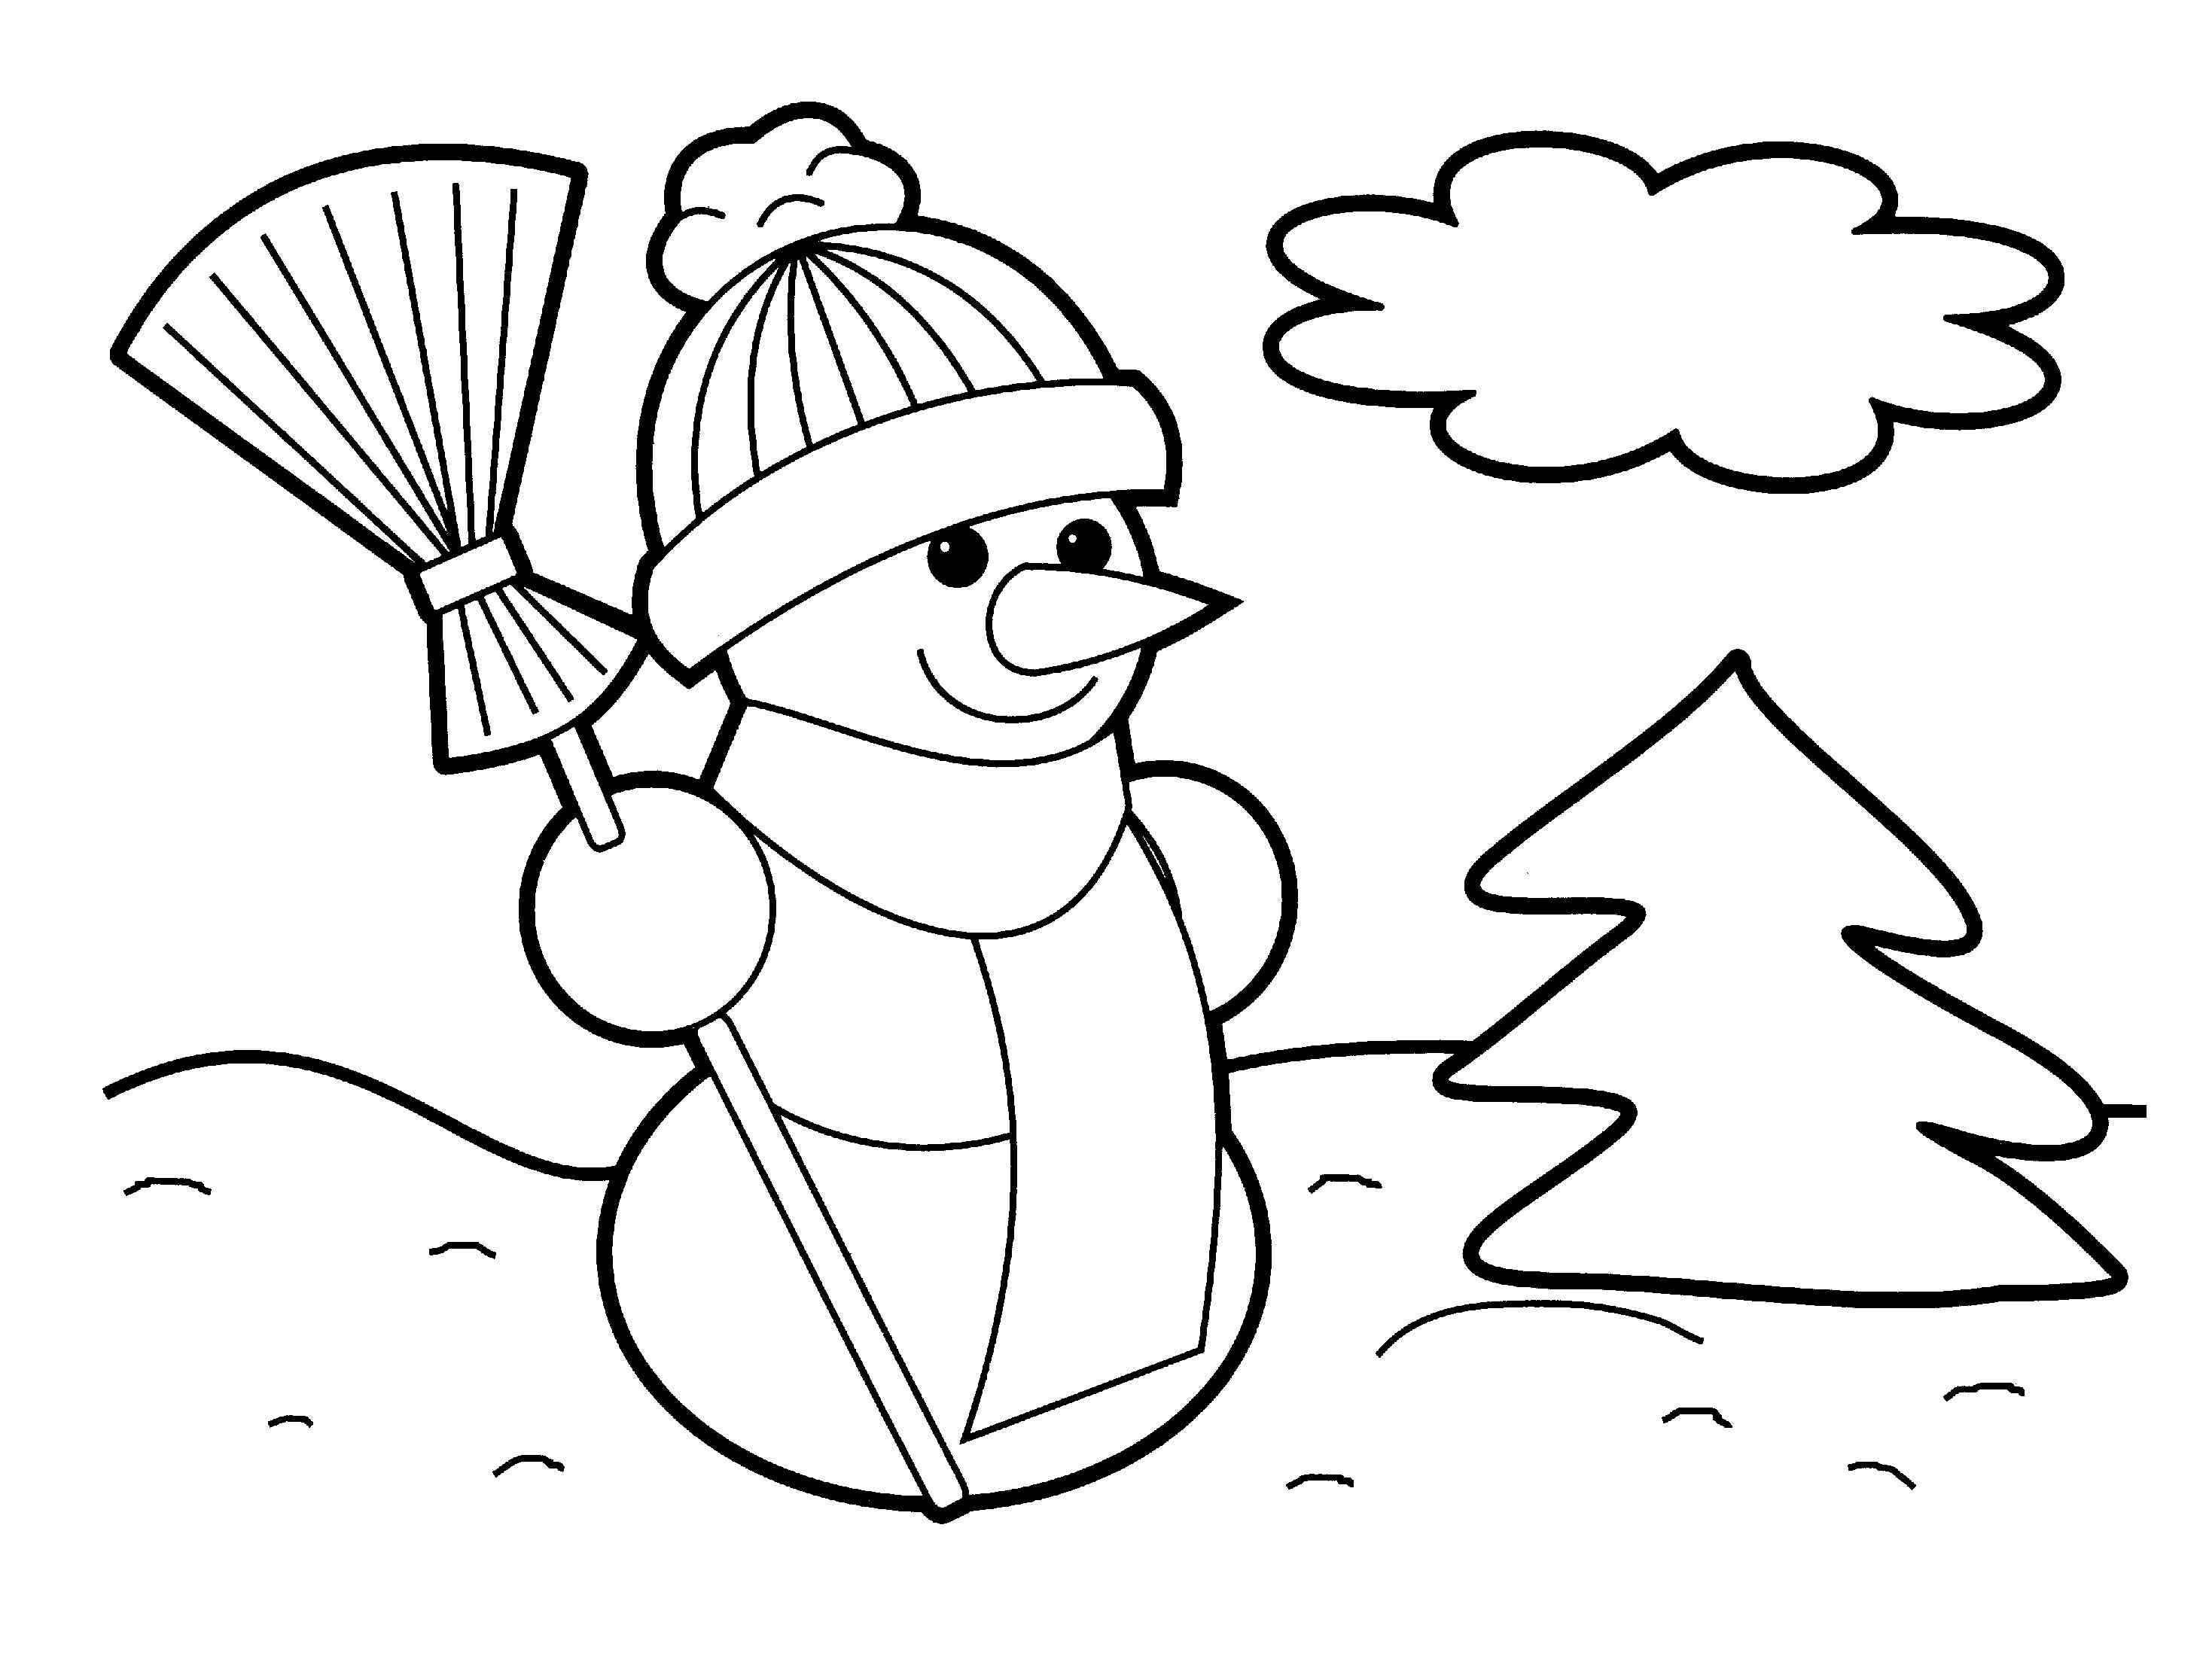 new christmas snowman coloring page for kids Projects to Try